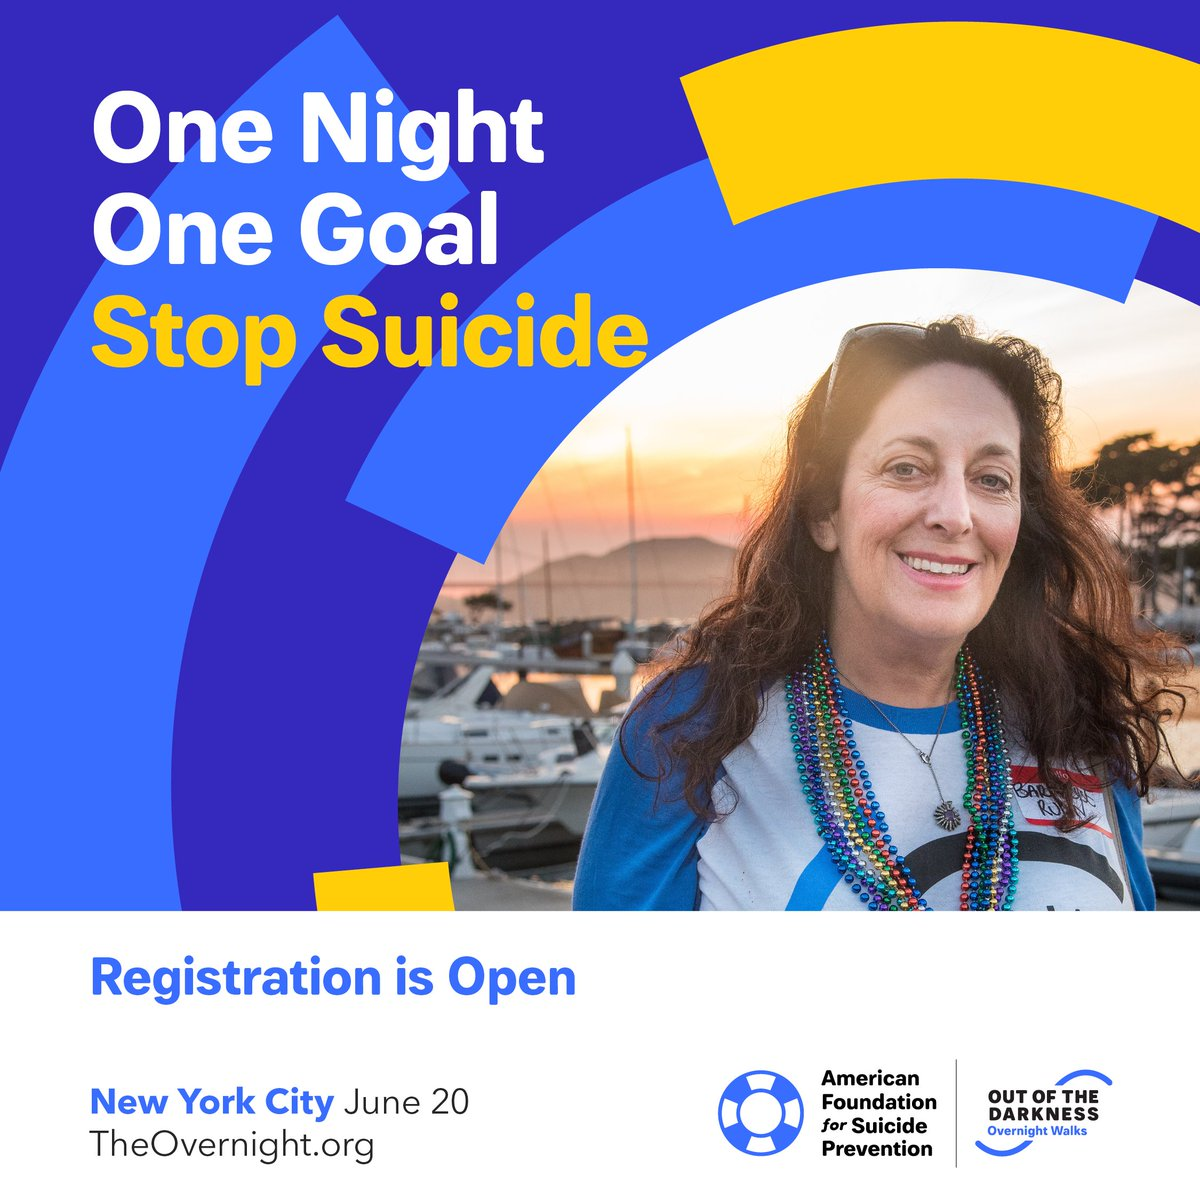 Join us for the 25th #OvernightWalk to honor yourself or your loved ones. We cant wait to walk with you in New York City on June 20th. Register using the promo code LAUNCH for a $25 registration fee and $100 fundraising credit! 💙 ➡️ theovernight.org/register